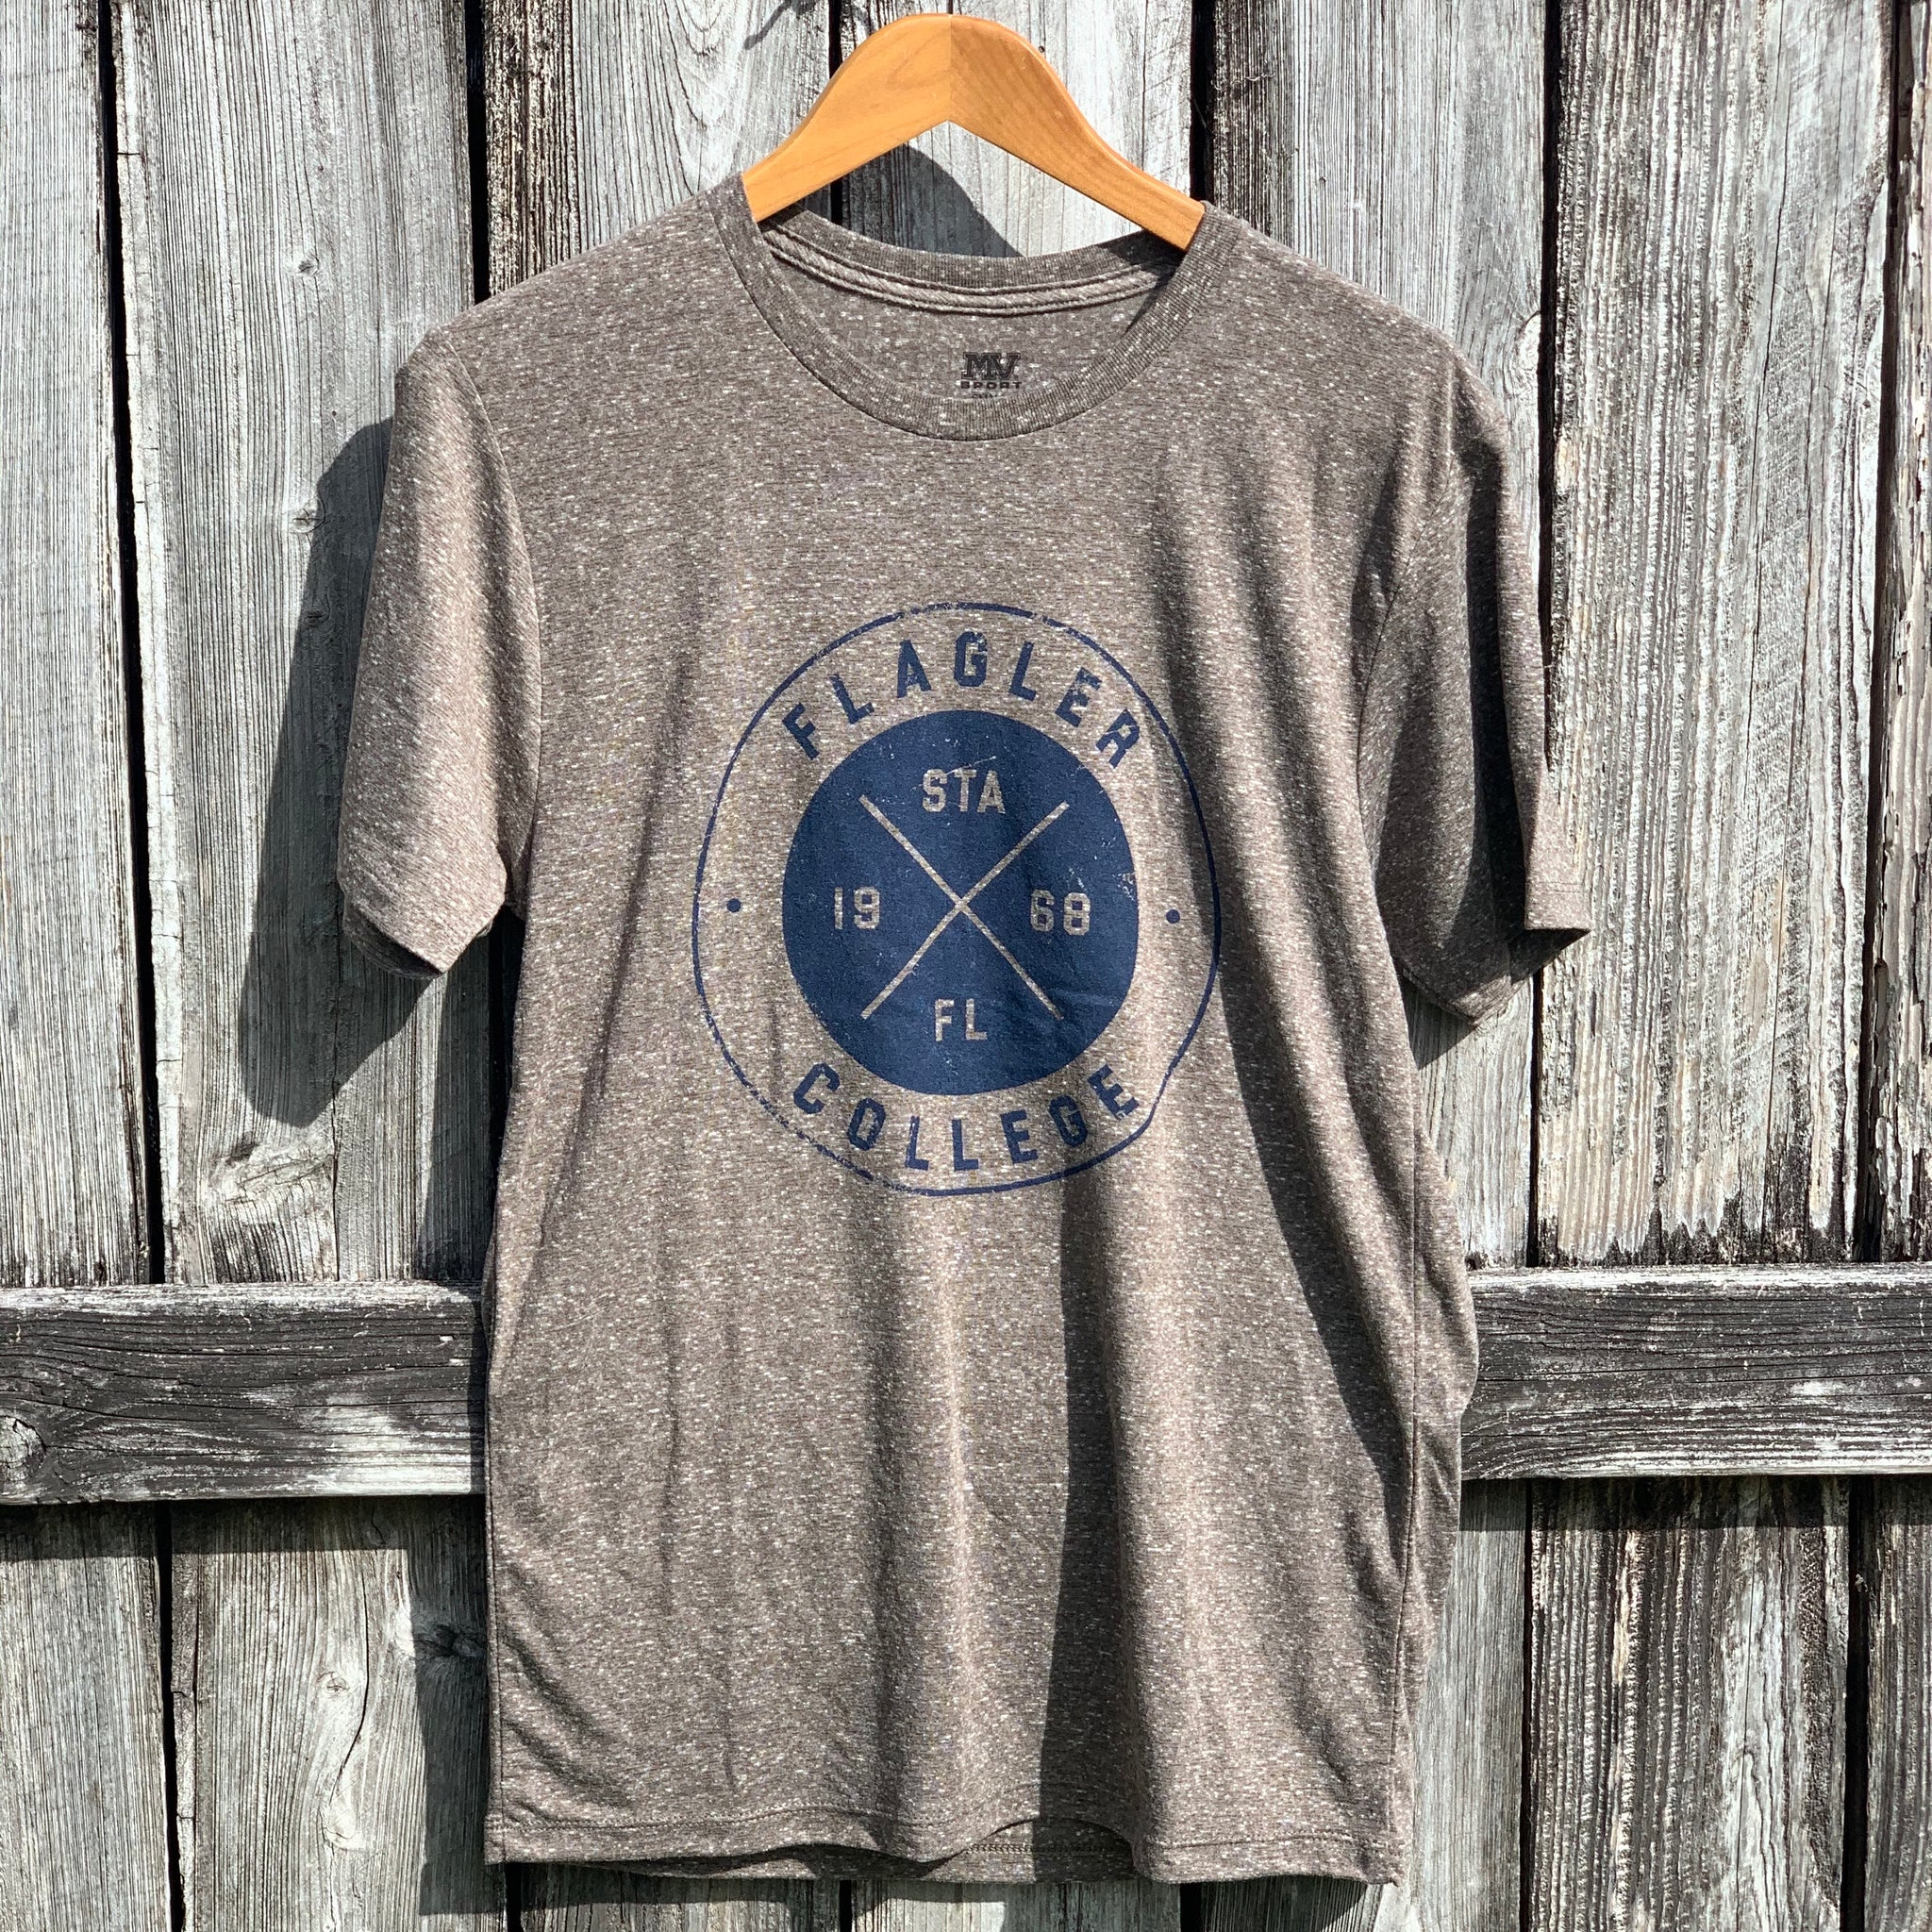 Grey t-shirt with Flagler college, STA, FL and 1968 printed in blue in a circular design